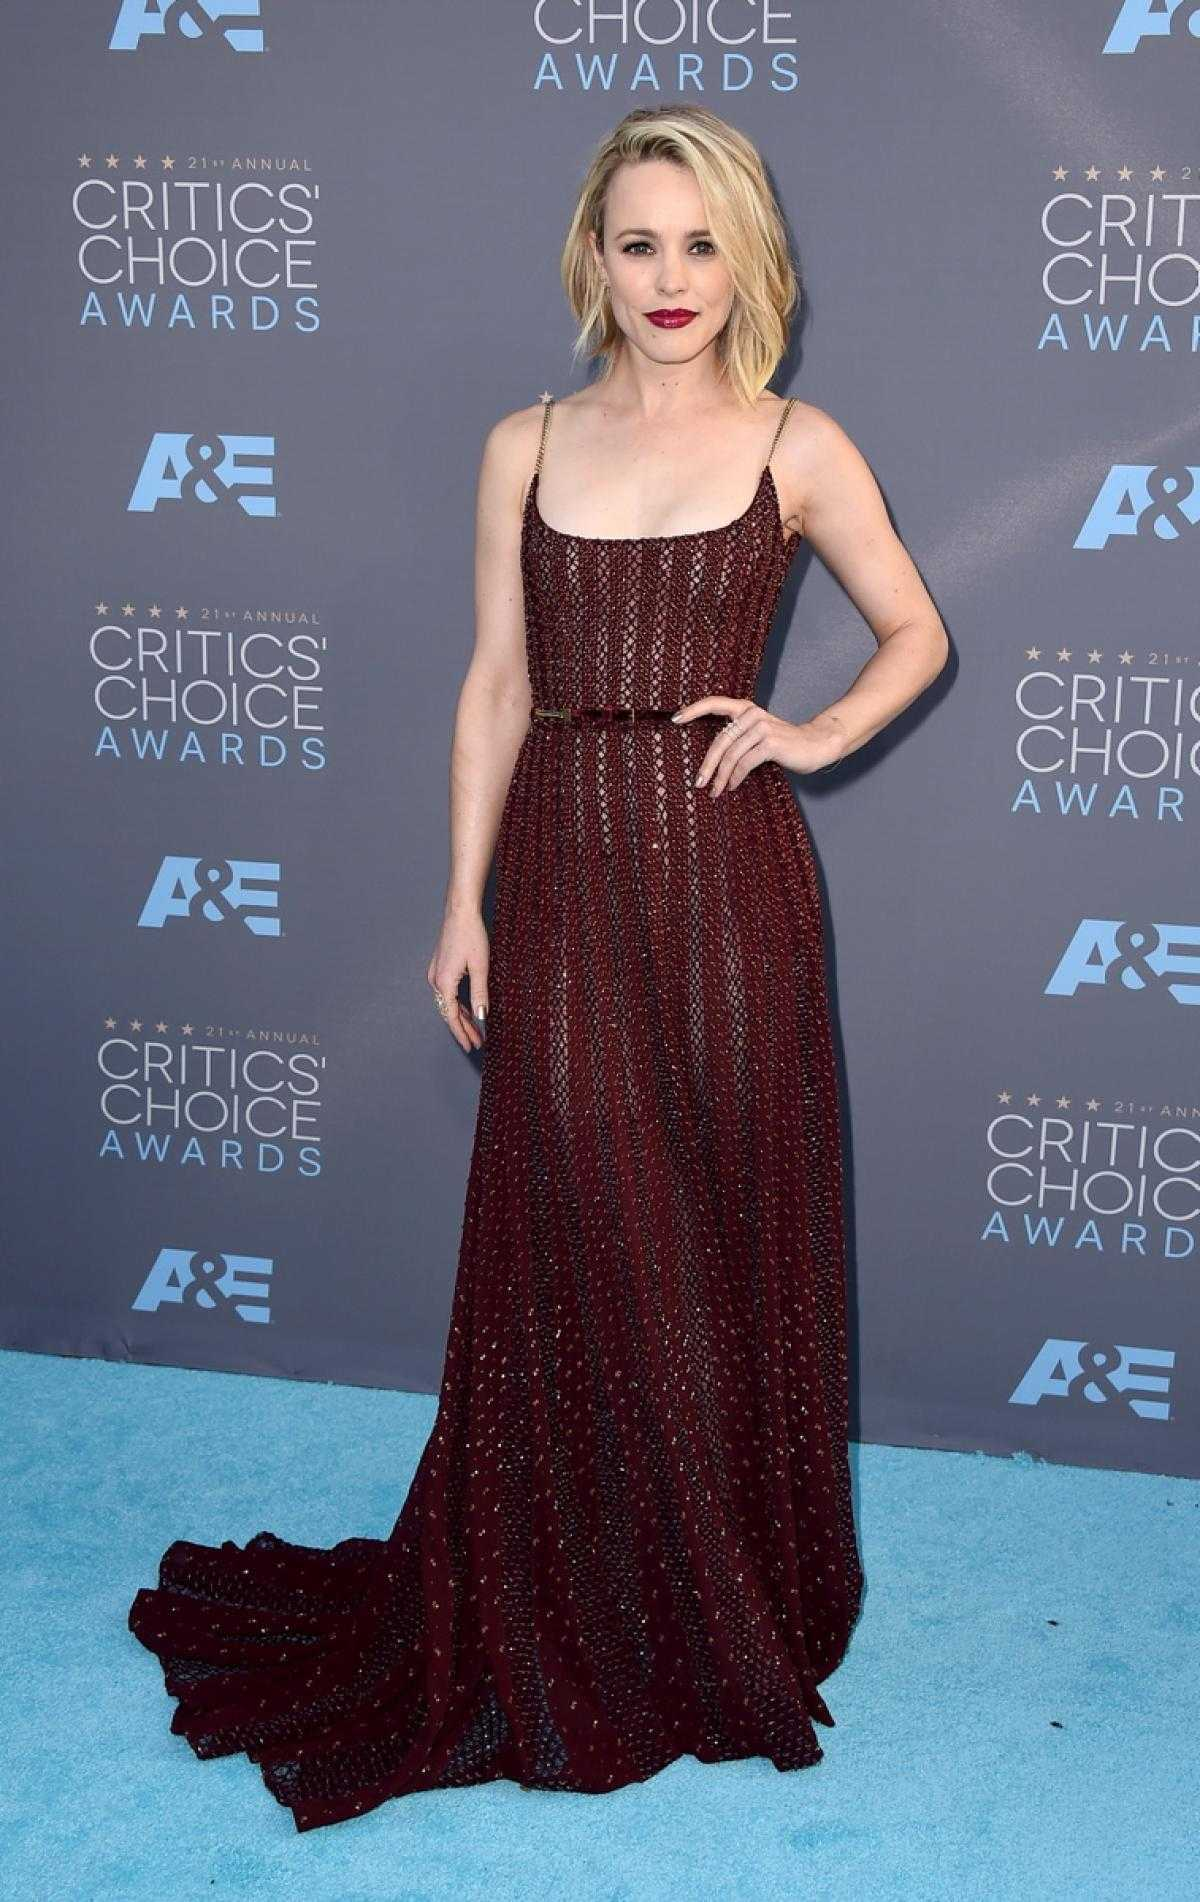 The Pop 4 Beauty Trends From The 2016 Critics' Choice Awards   Critics' Choice Awards